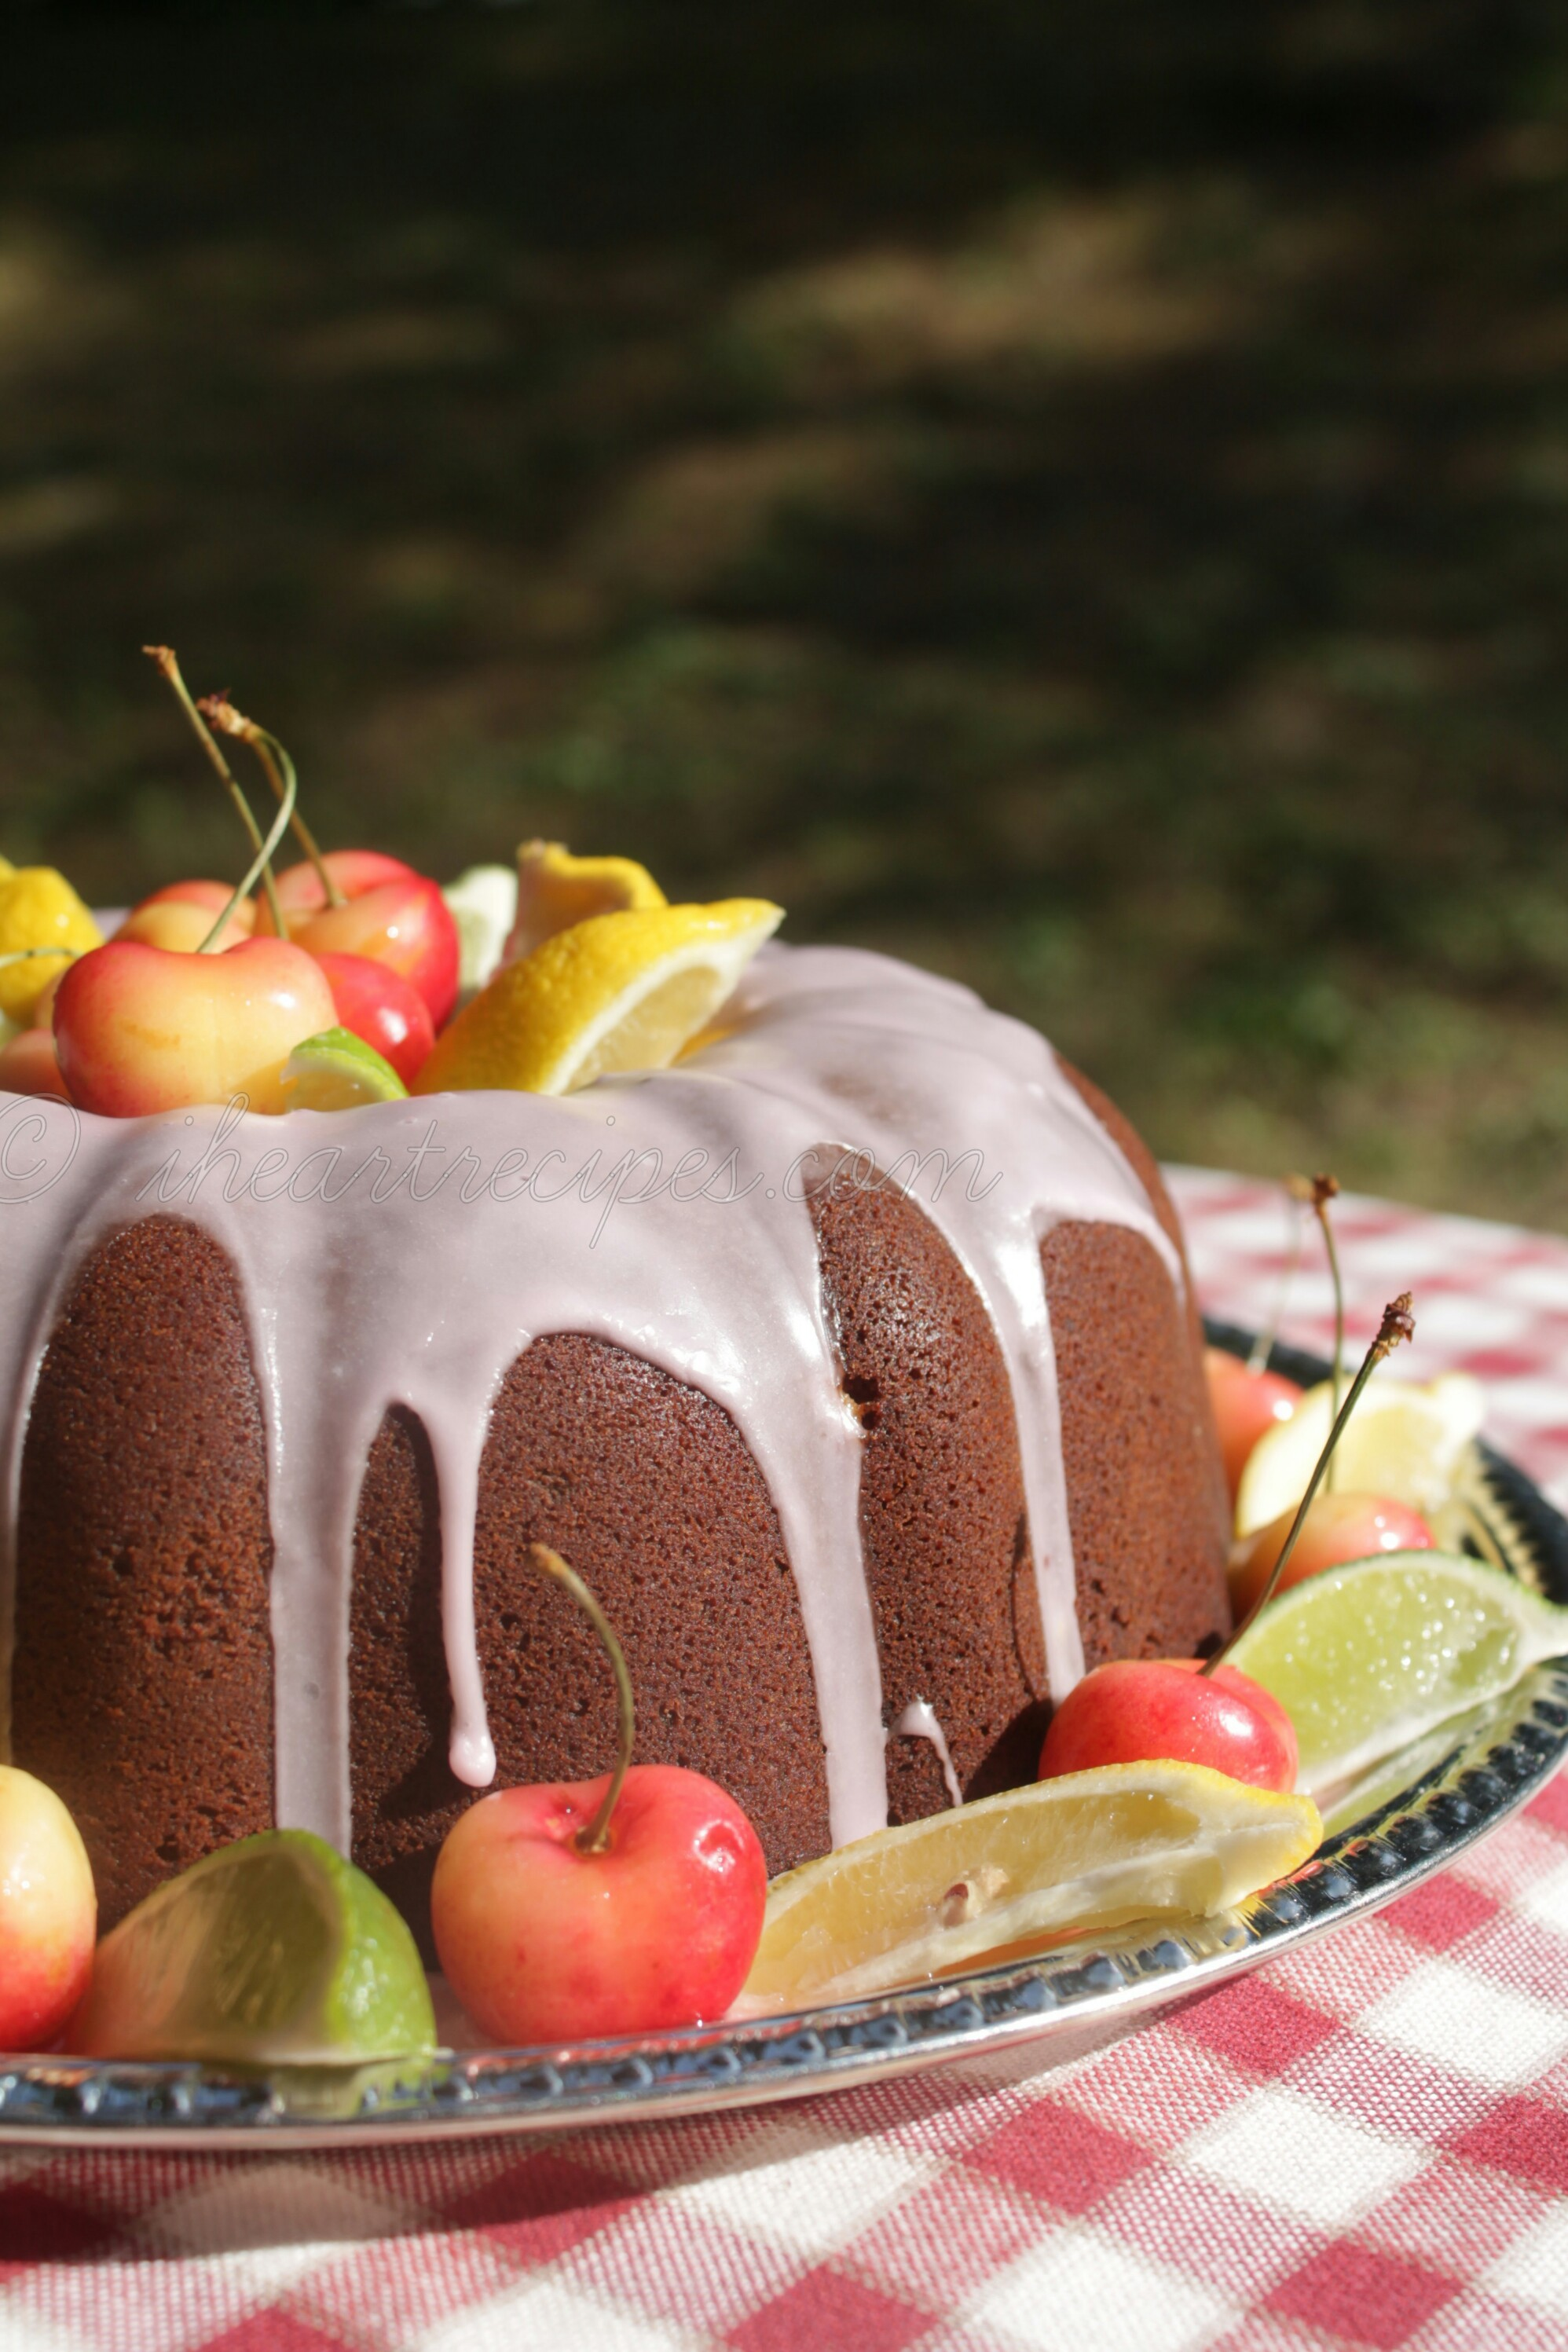 This sweet Cherry 7up Pound Cake is such a simple dessert recipe